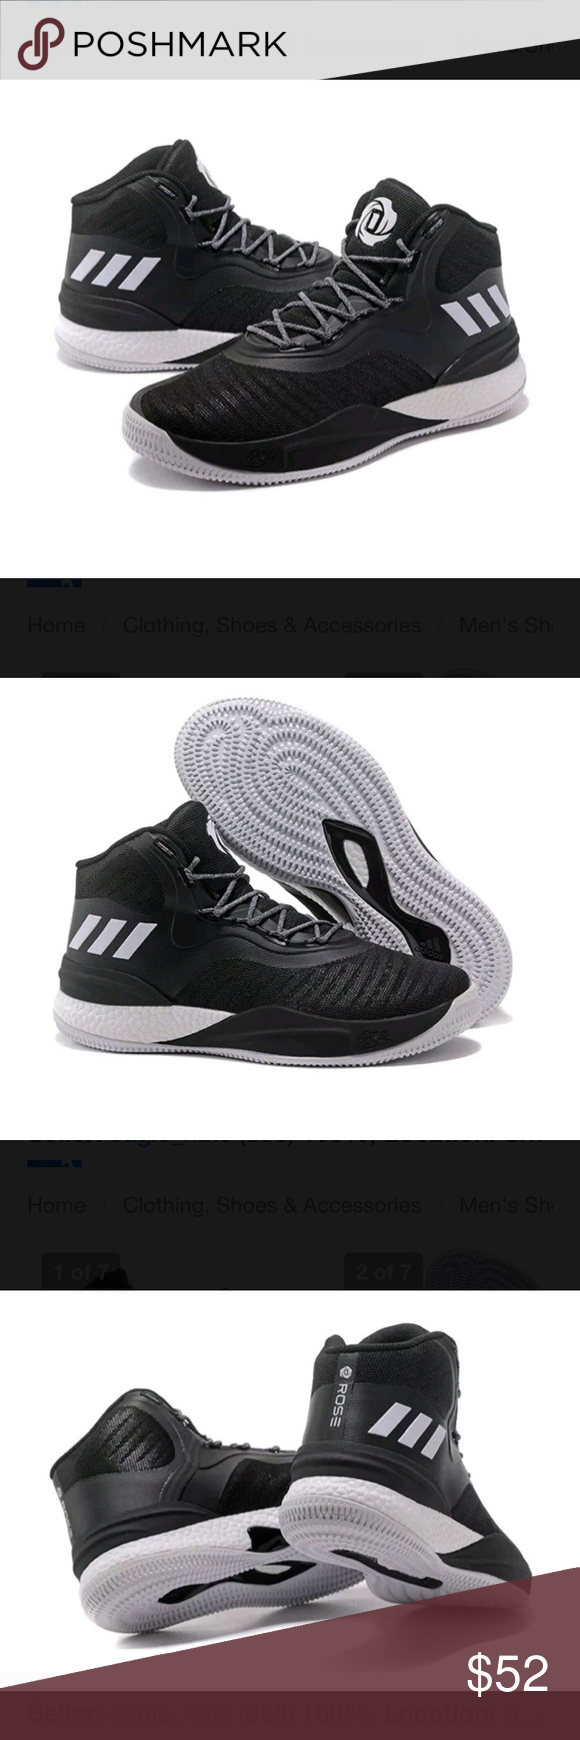 f47188503d68 Adidas SM D Rose 8 NBA NCAA Mens Basketball Shoe This is a brand new pair  of DRose Basketball shoes Mens Size 16. adidas Shoes Sneakers